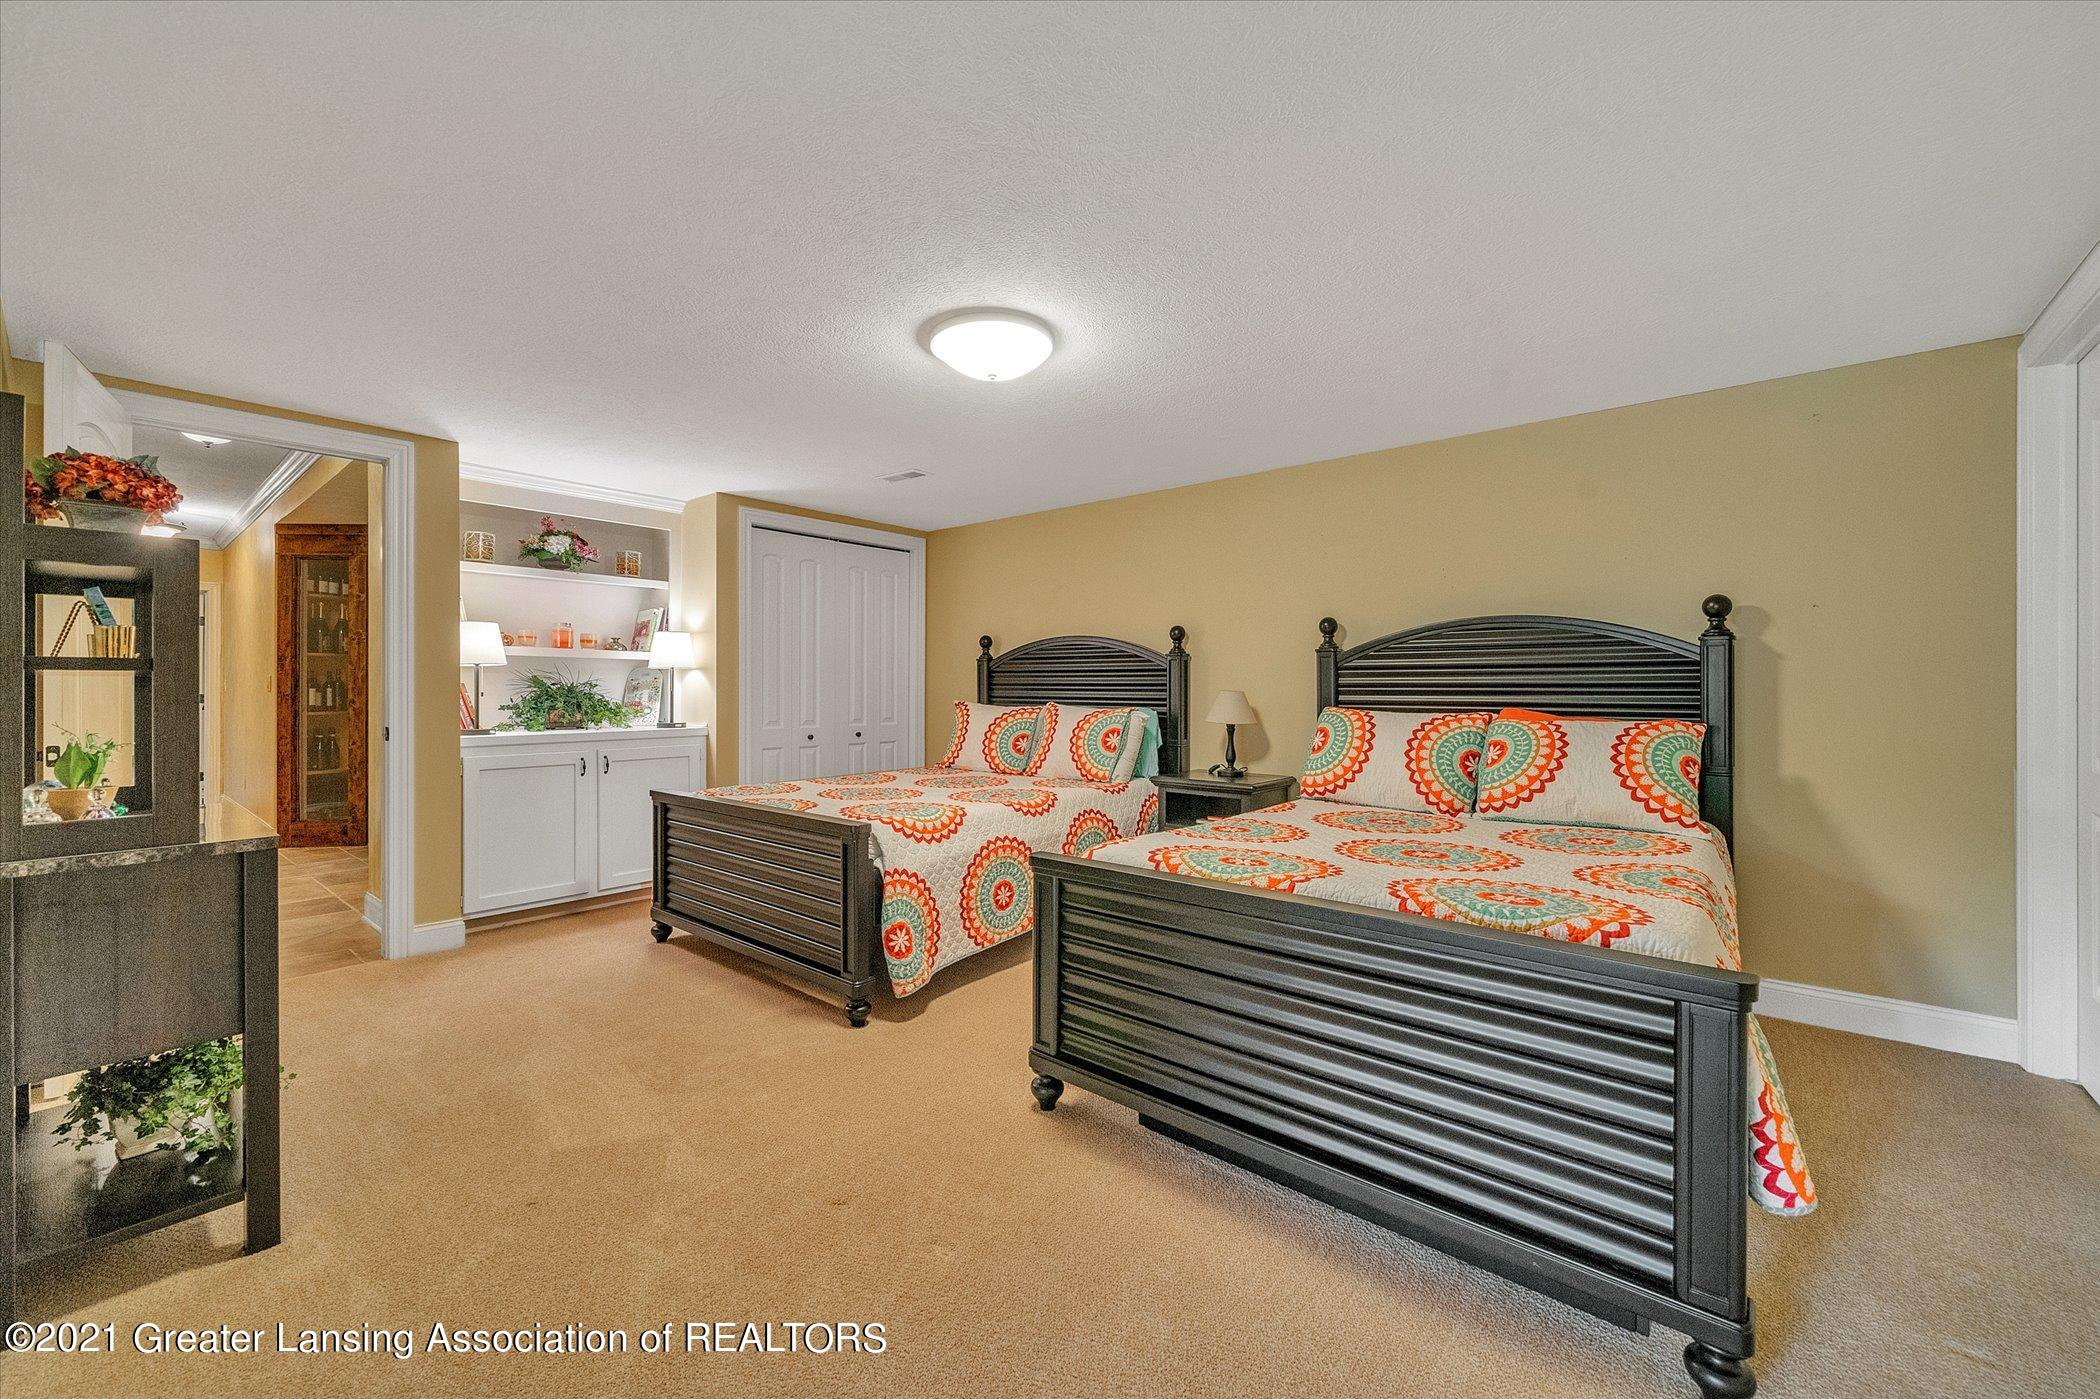 6330 Pine Hollow Dr - LOWER LEVEL Bedroom 4 - 52